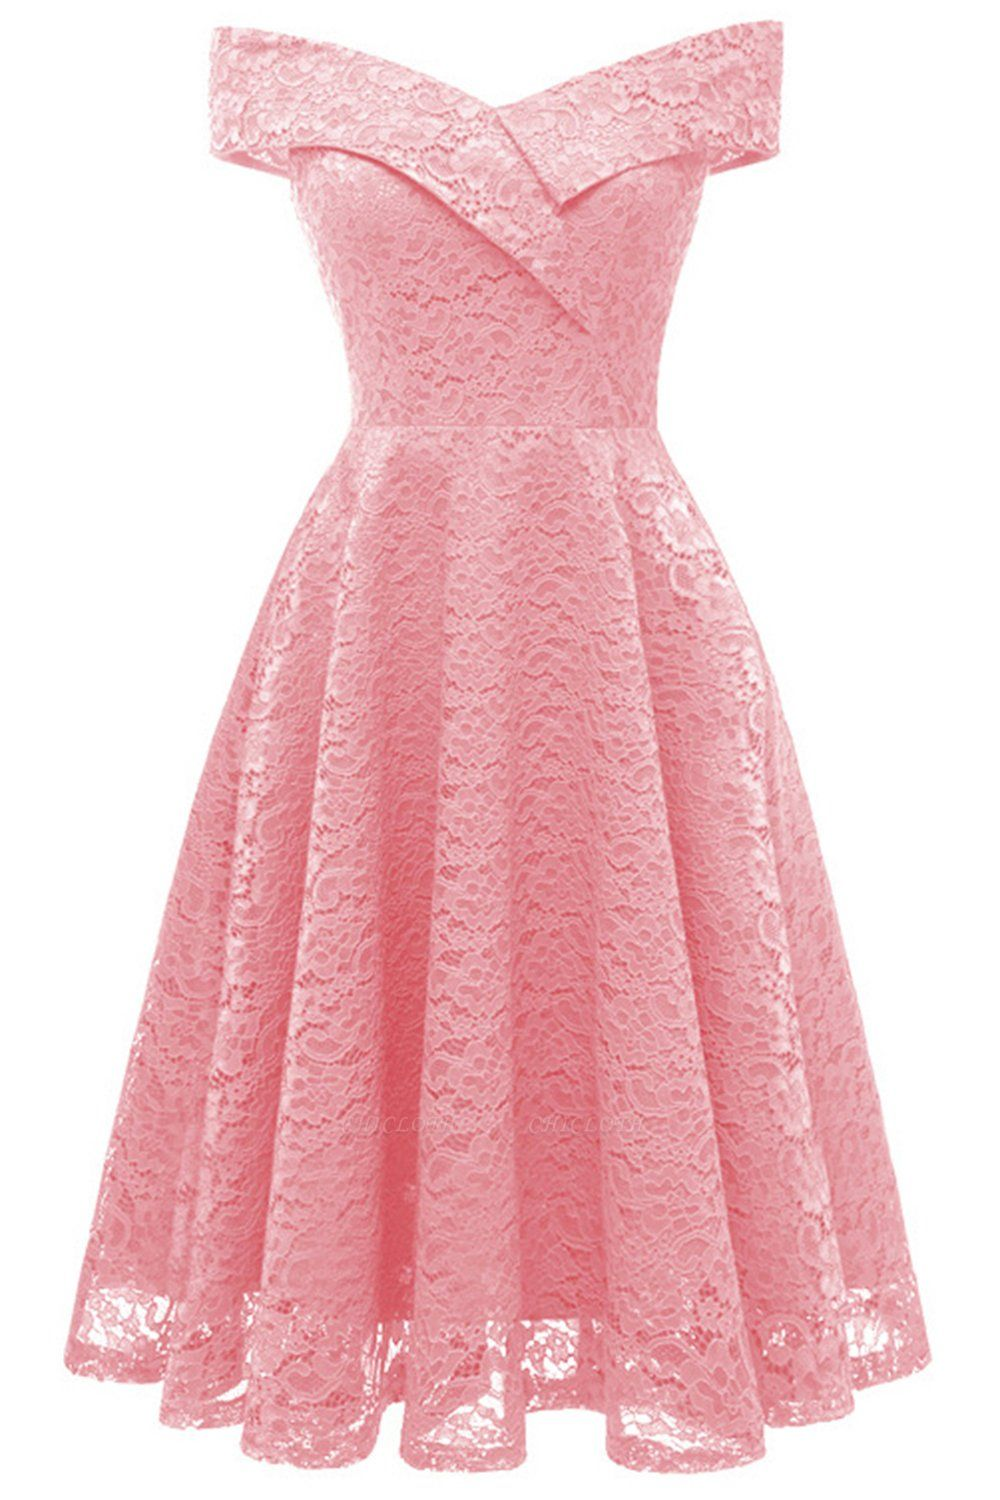 A| Chicloth Cute Lace Dress Wedding Party Formal Dress